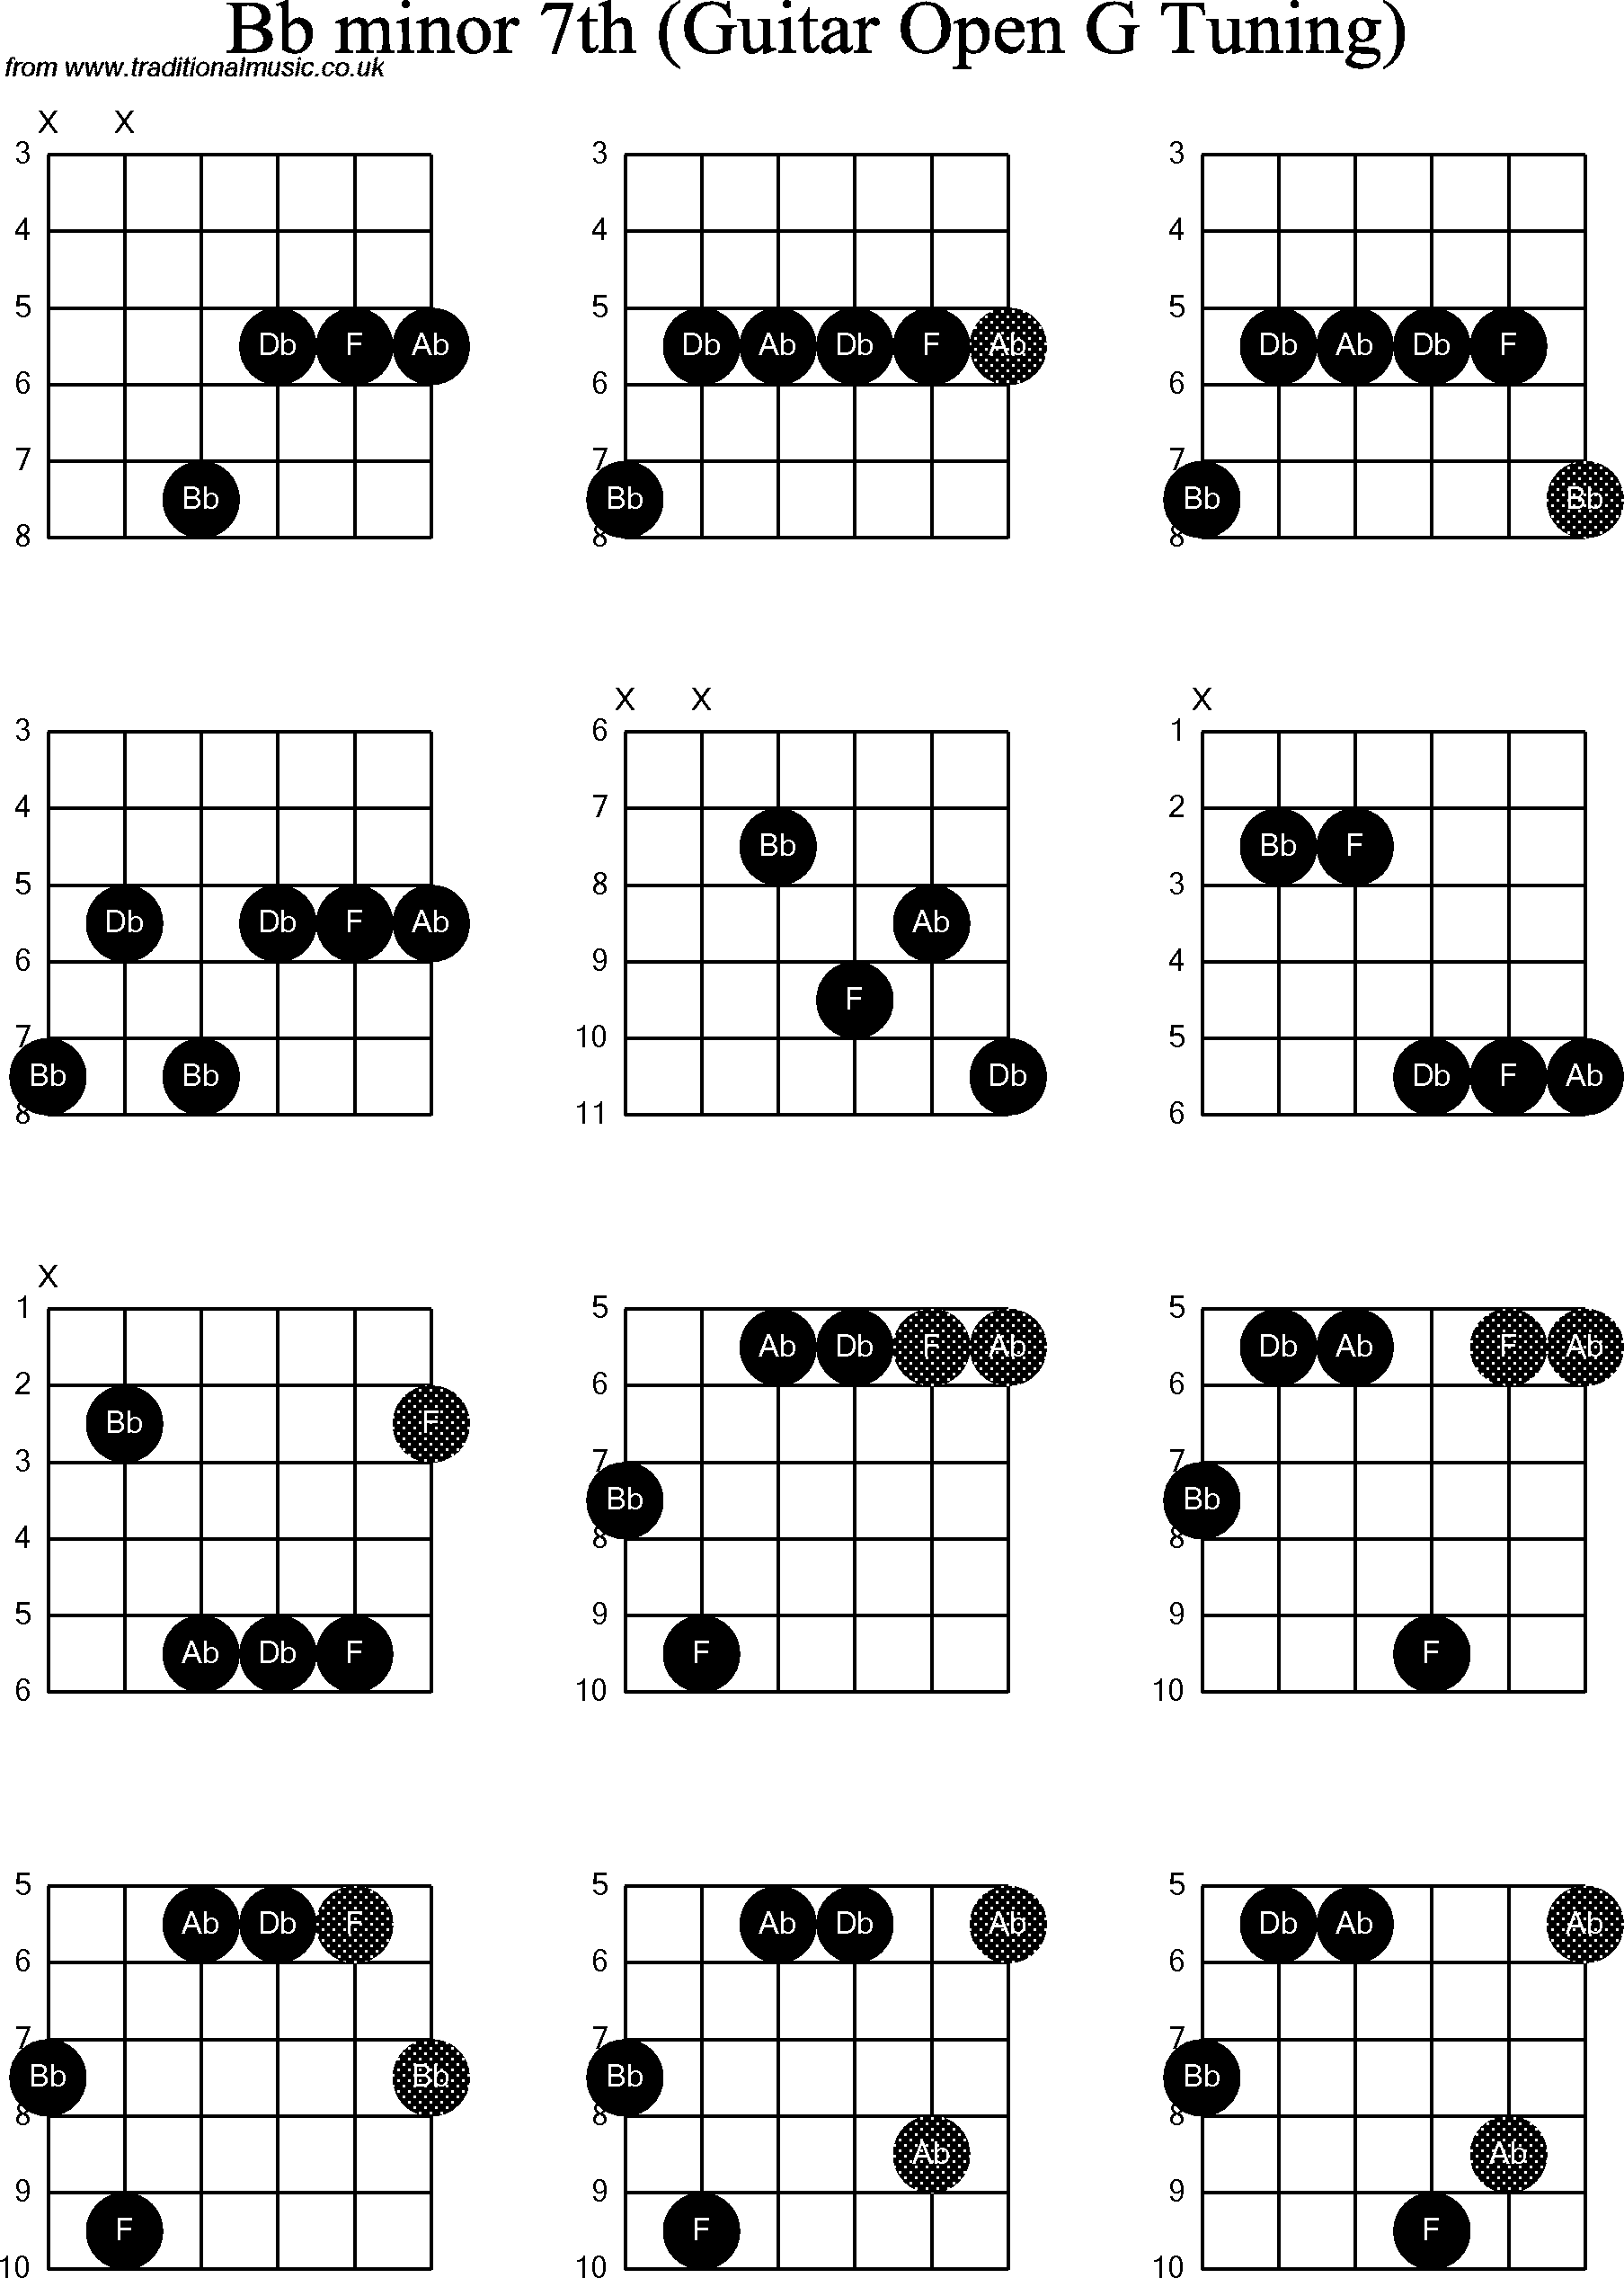 chord diagrams for  dobro bb minor7th